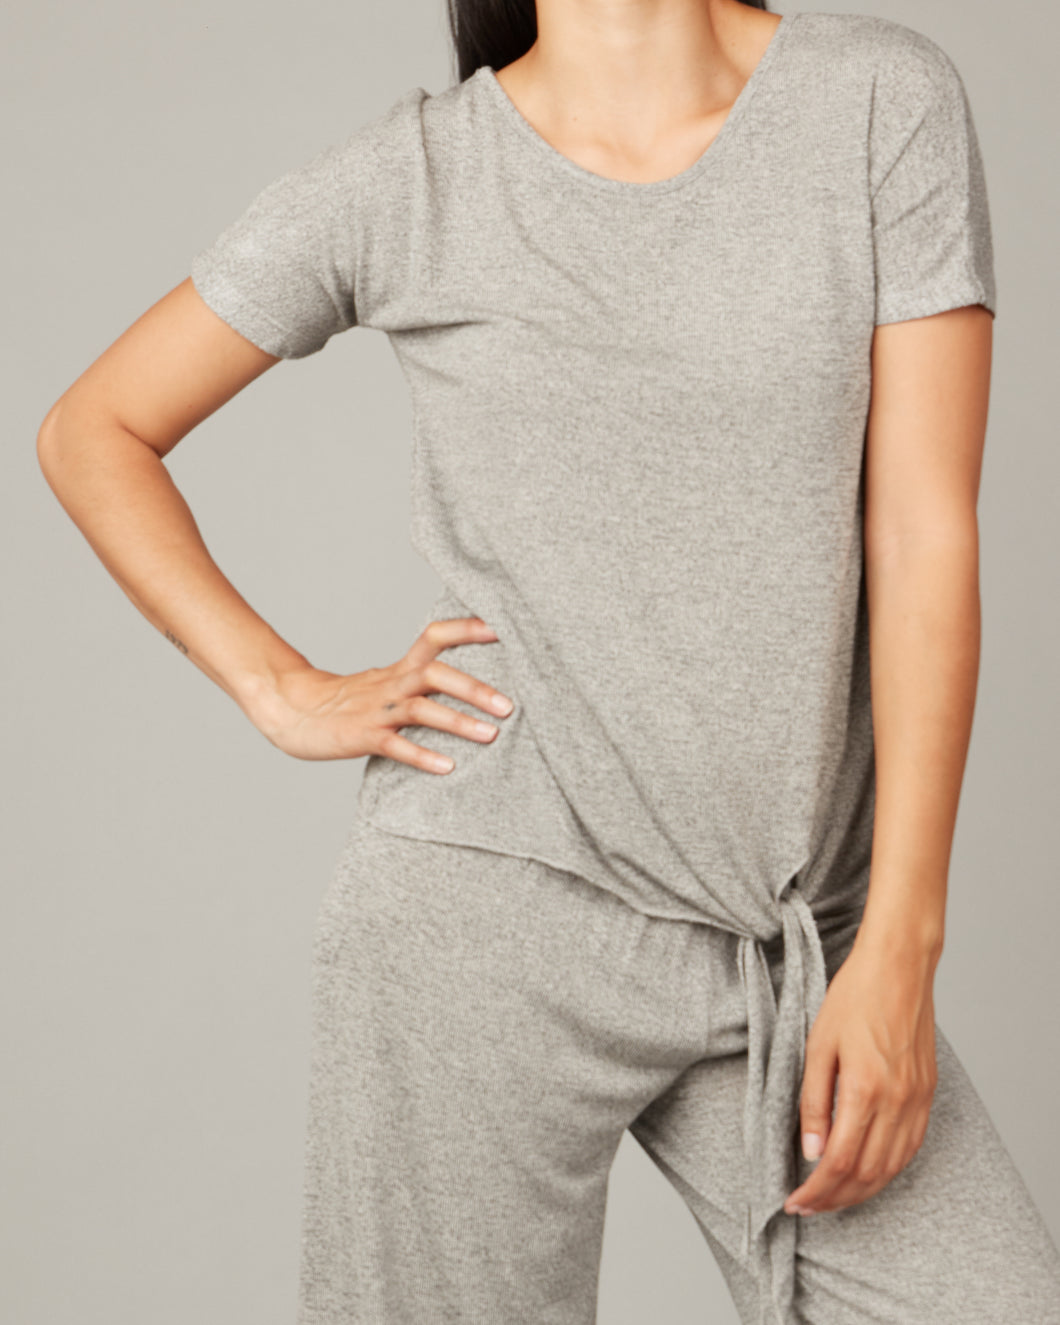 Pistache Melange Viscose Knit Tee with Side Tie